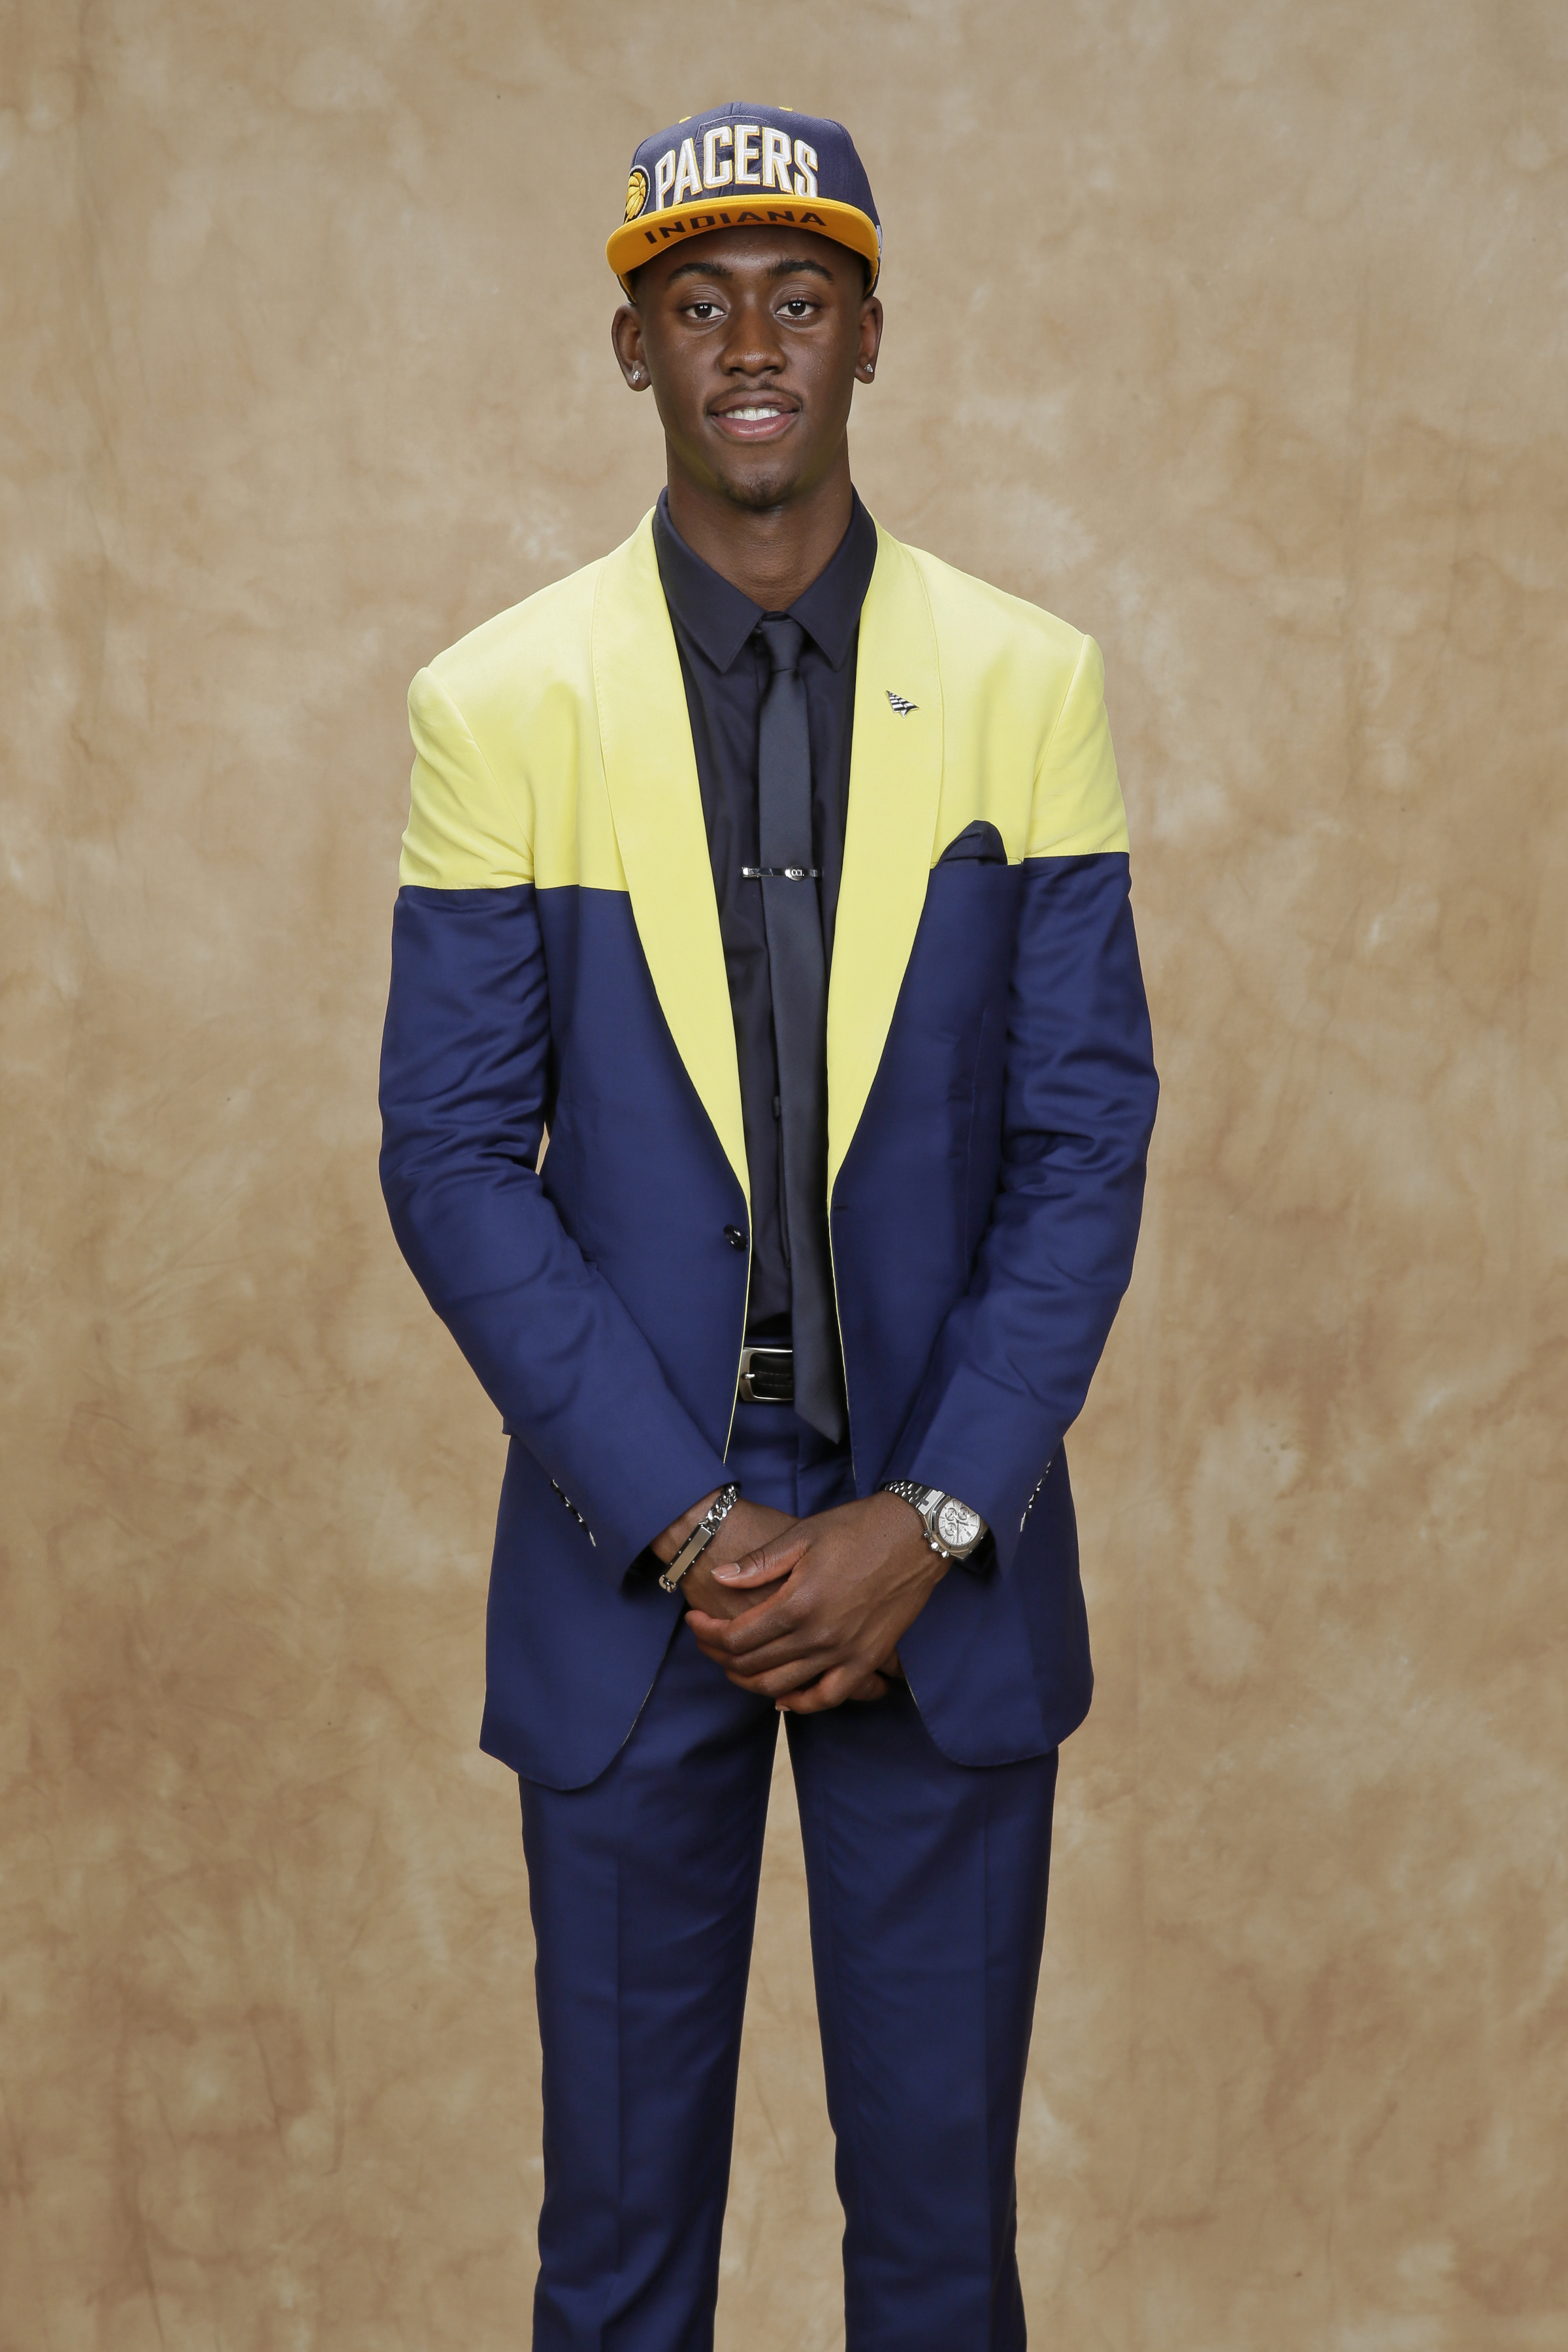 In case there was any doubt about the school Caris LeVert hailed from, he wore a color-blocked suit jacket that would make University of Michigan proud.